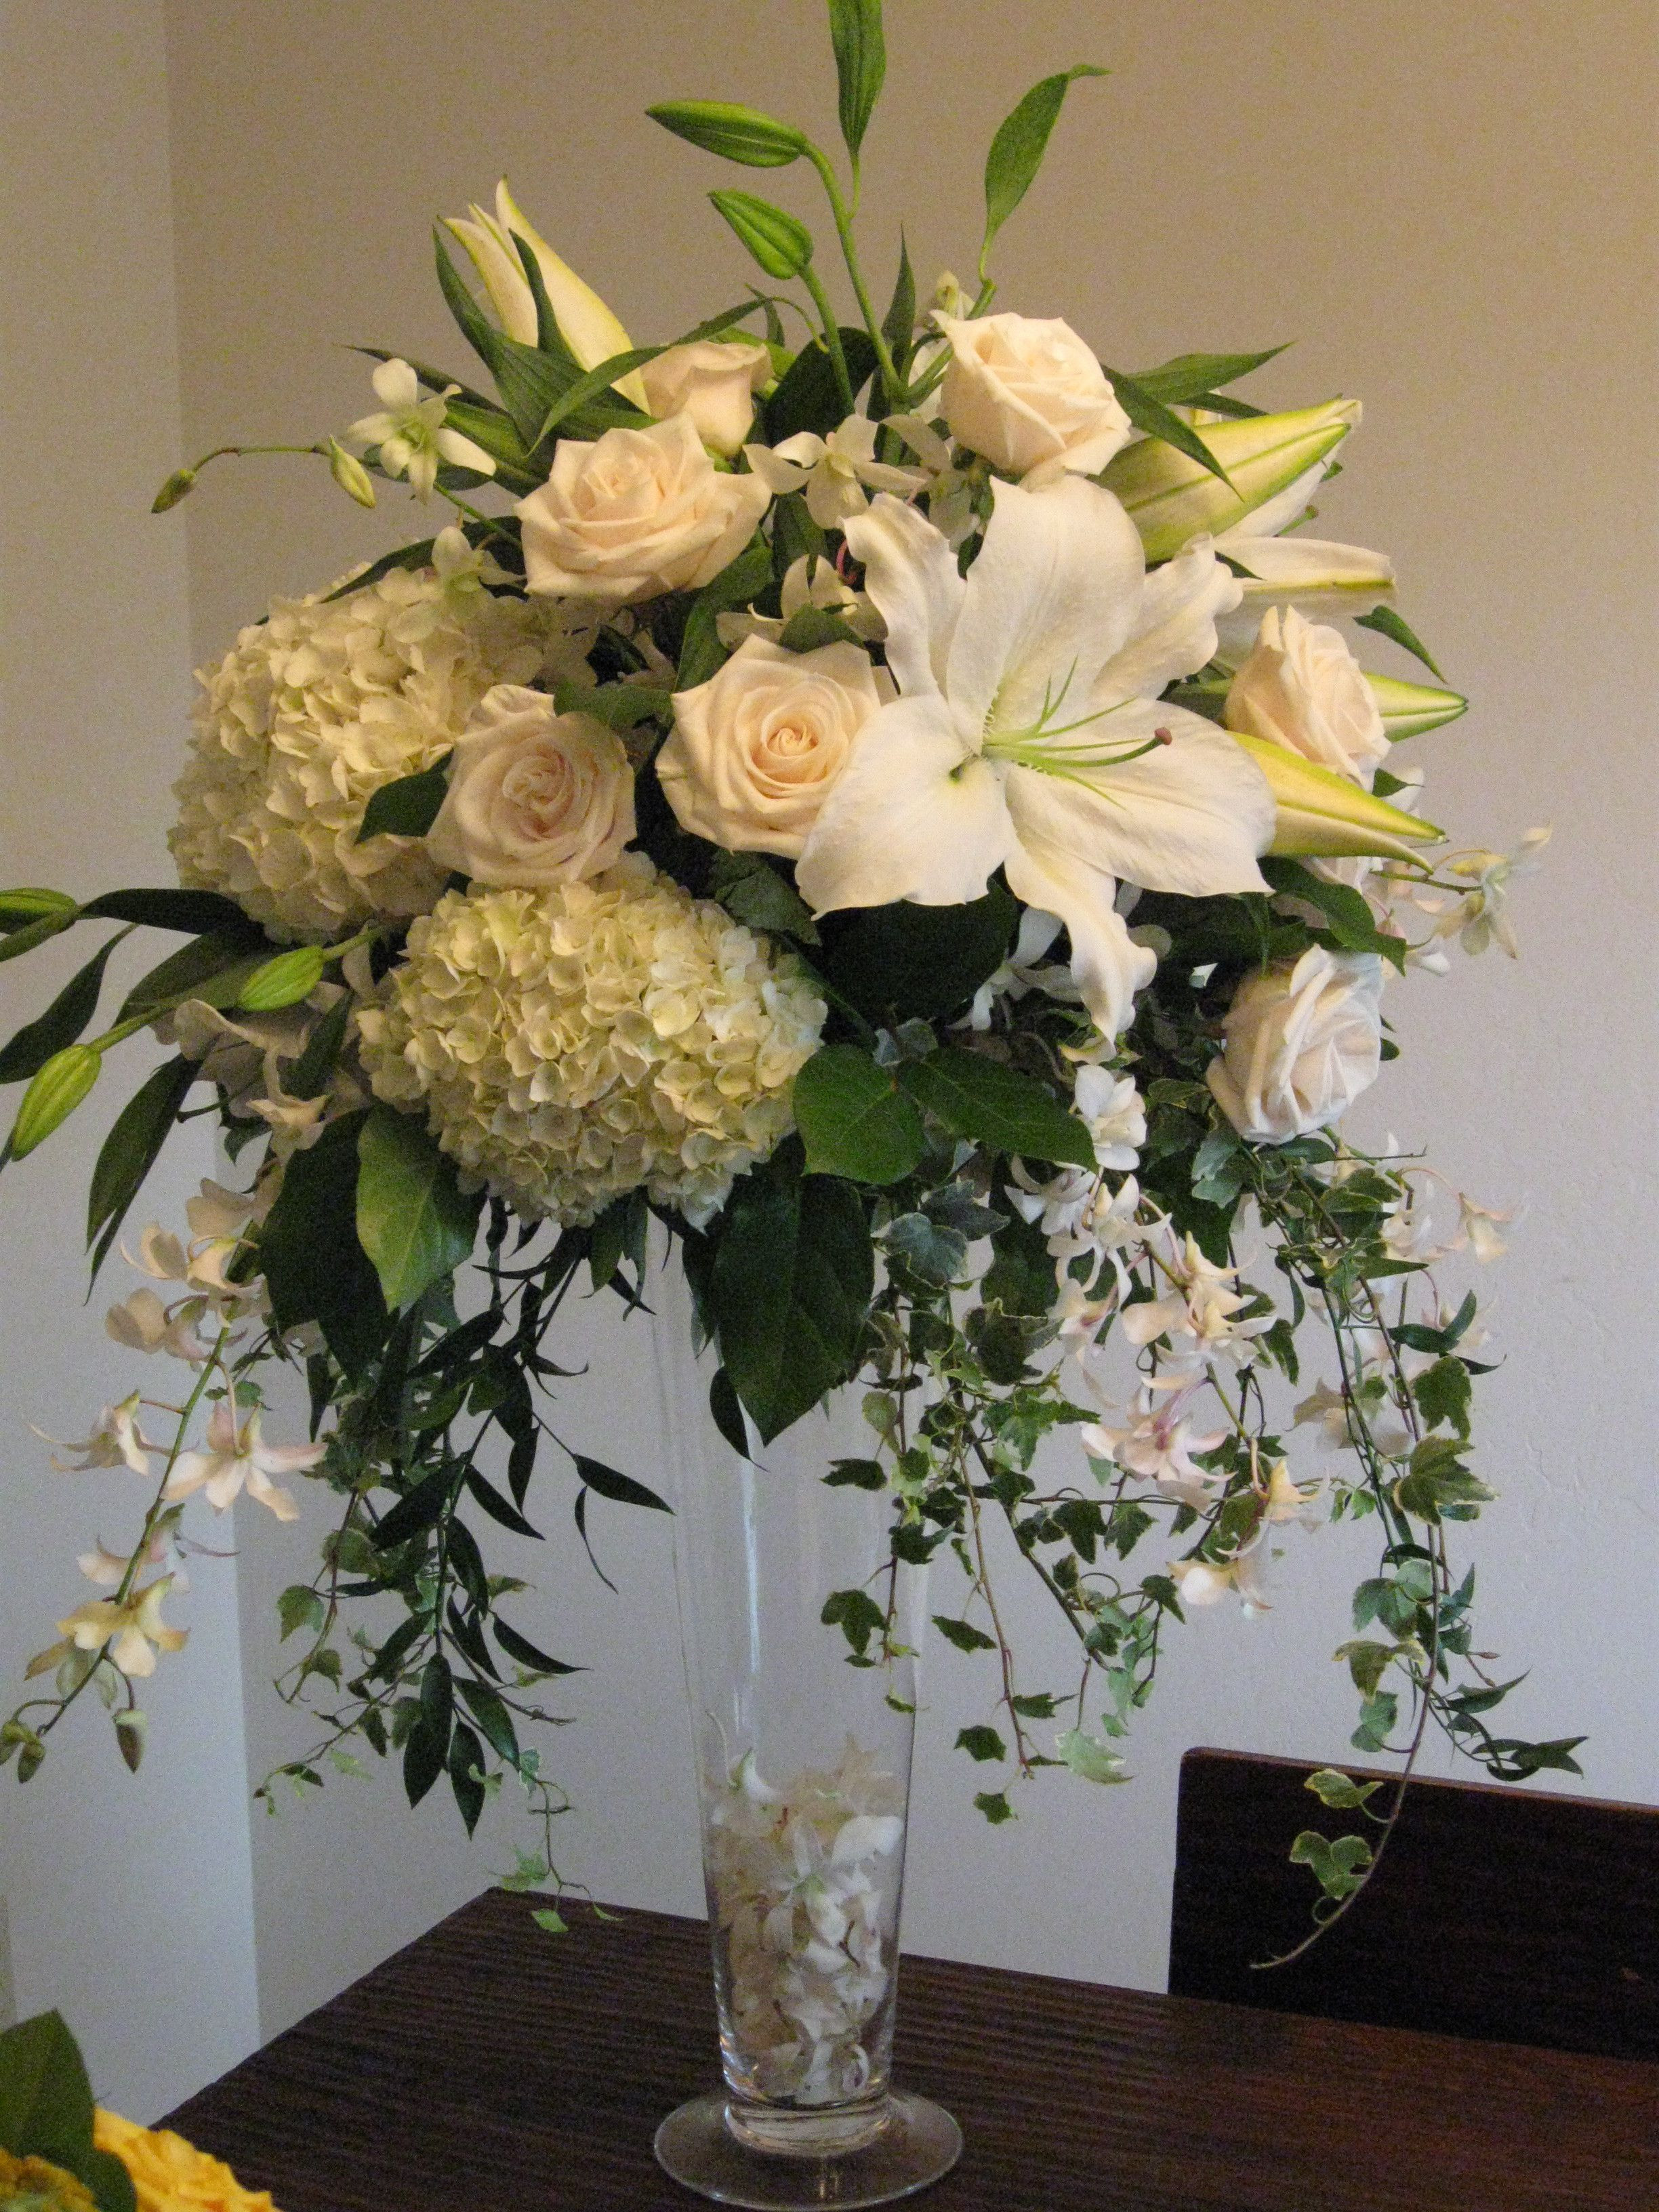 tall wedding vases for sale of centerpiece white roses hydrangea orchids tall vendela the regarding centerpiece white roses hydrangea orchids tall vendela the blue orchid dendrobium ivy casablanca oriental lilies trumpet vase